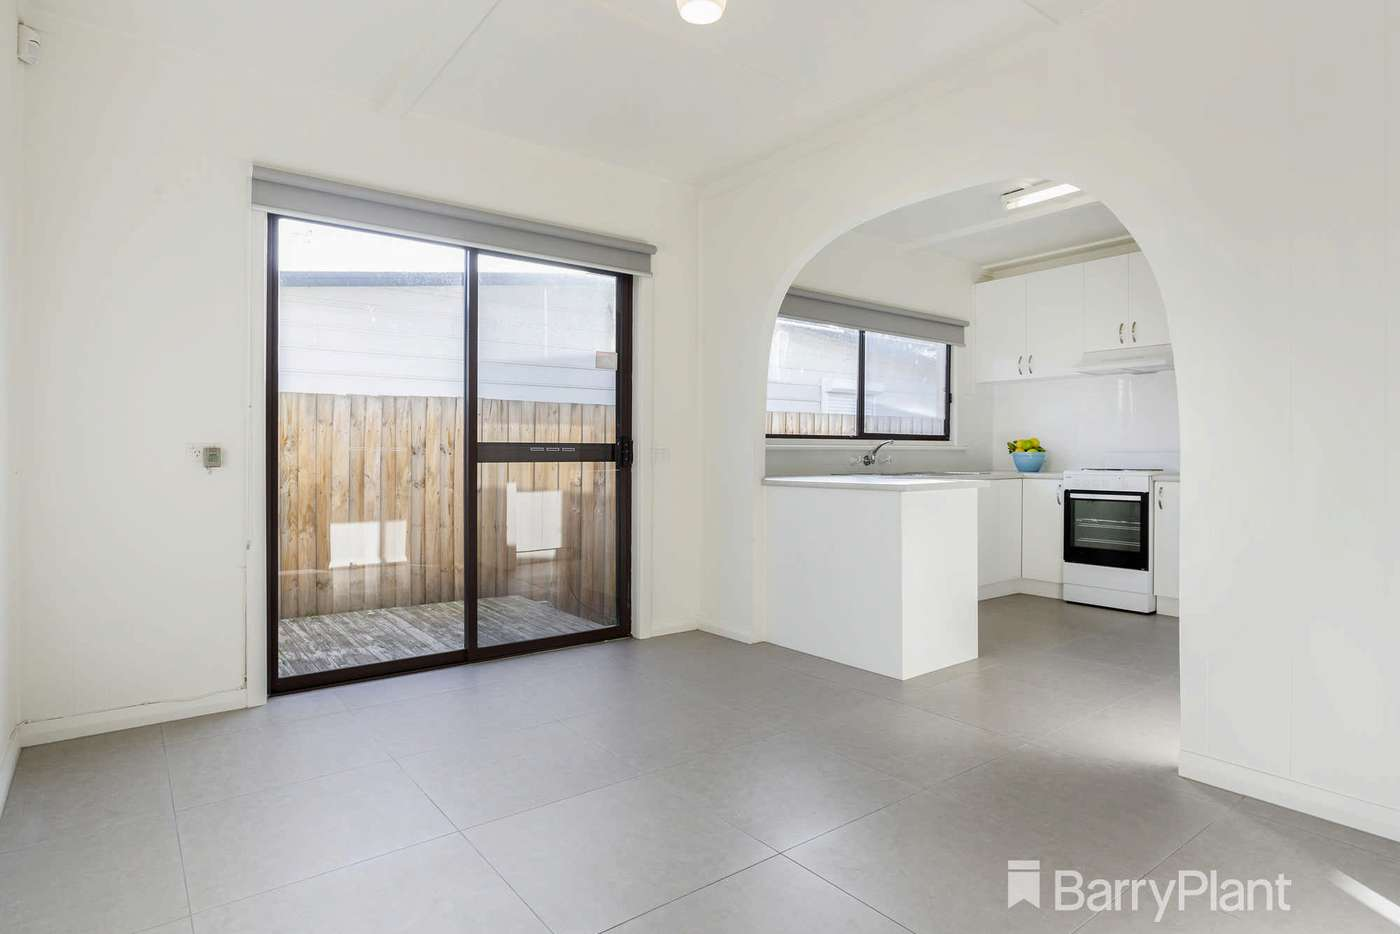 Fifth view of Homely house listing, 210 Baxter-Tooradin Road, Baxter VIC 3911